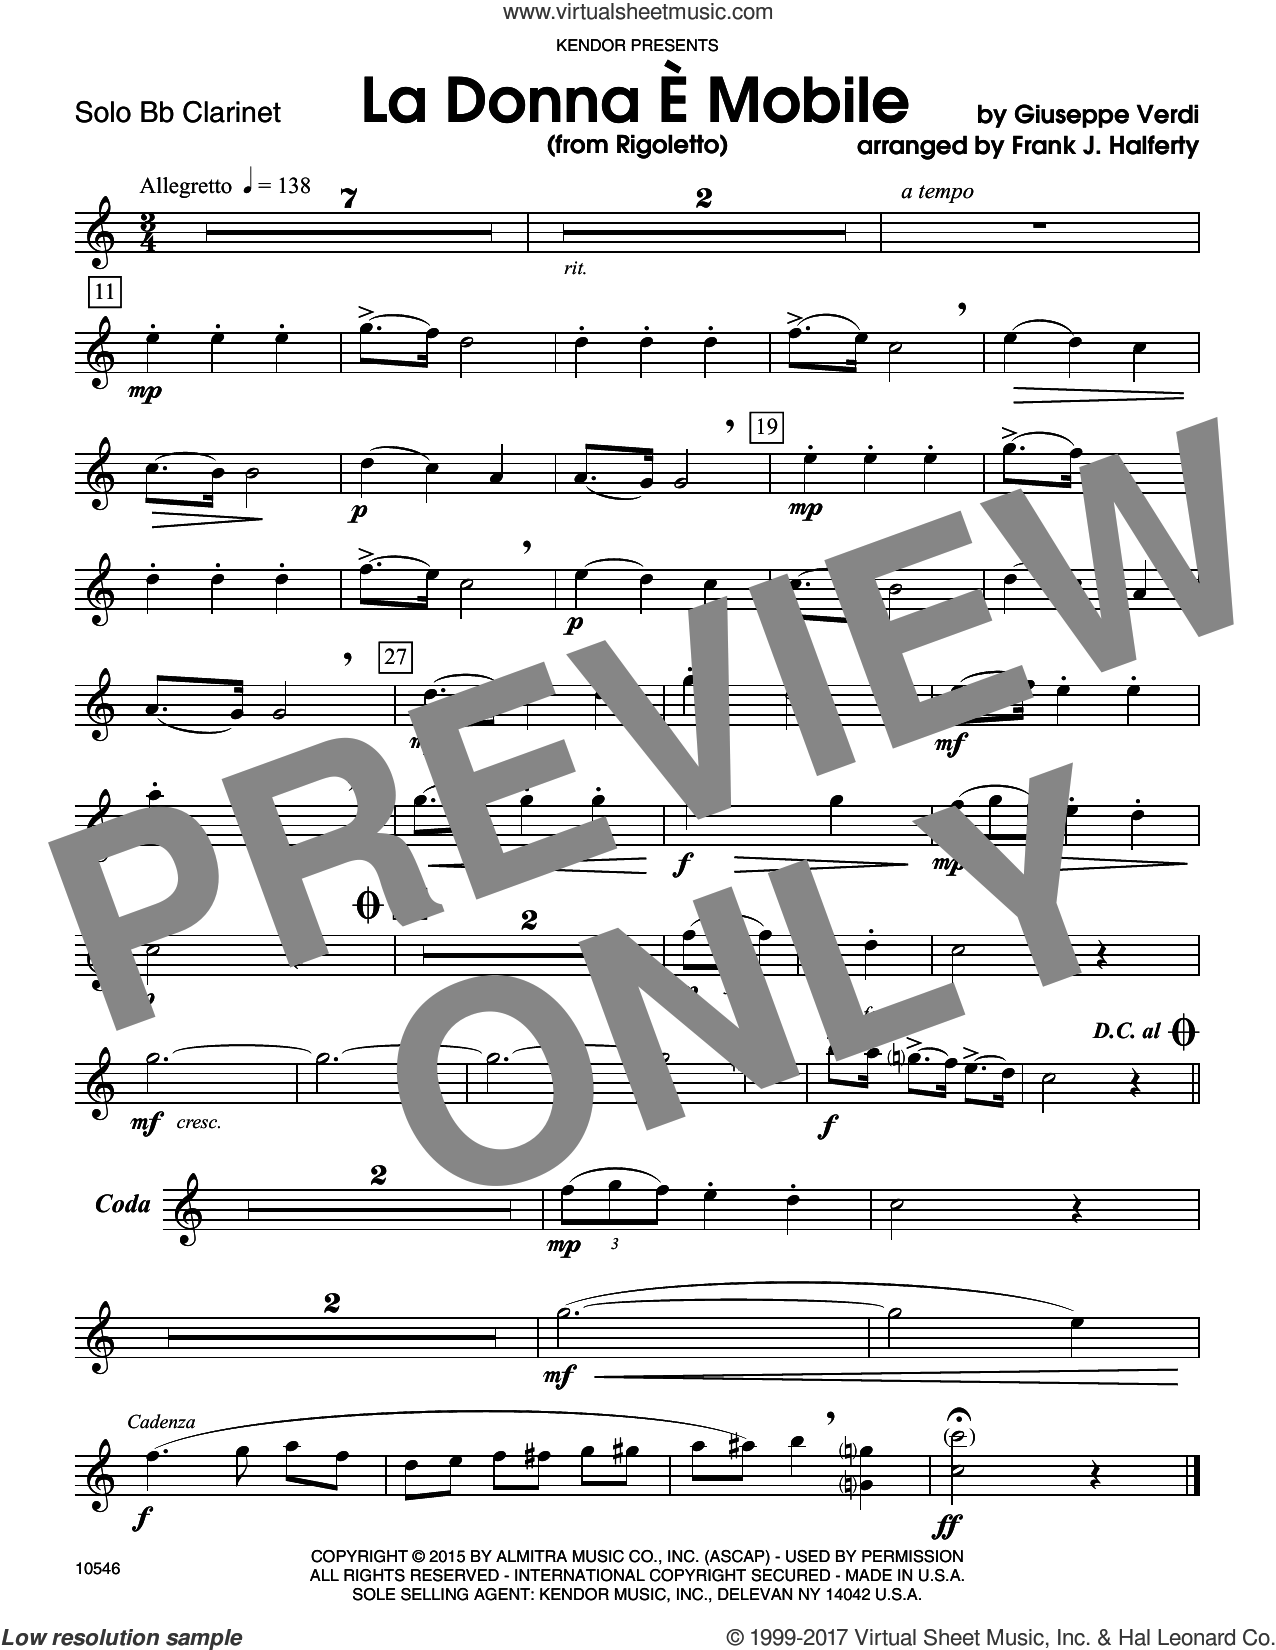 La Donna E Mobile (from Rigoletto) (complete set of parts) sheet music for clarinet and piano by Giuseppe Verdi and Frank J. Halferty, classical score, intermediate skill level